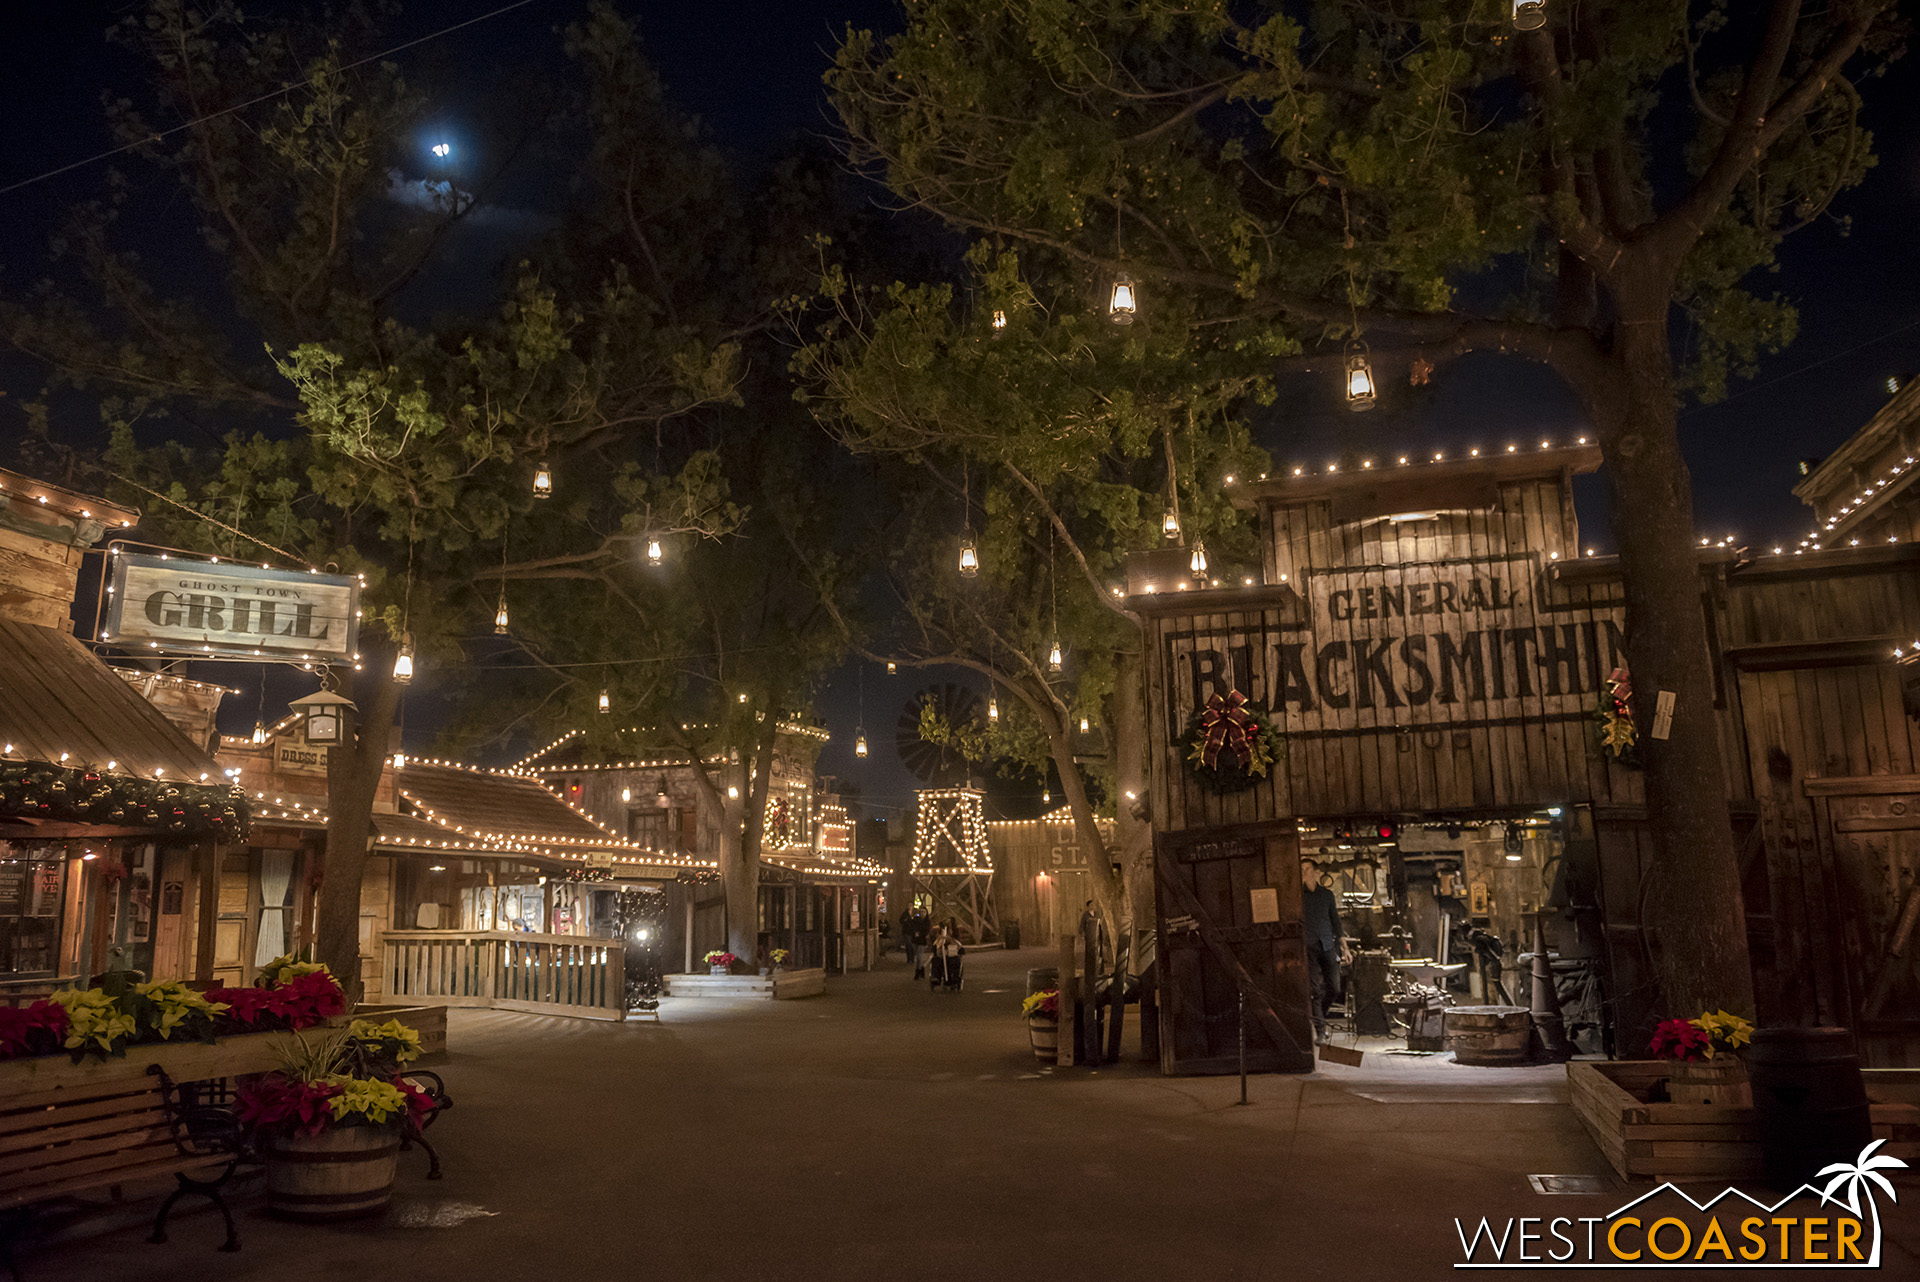 Ghost Town is gorgeous at night.